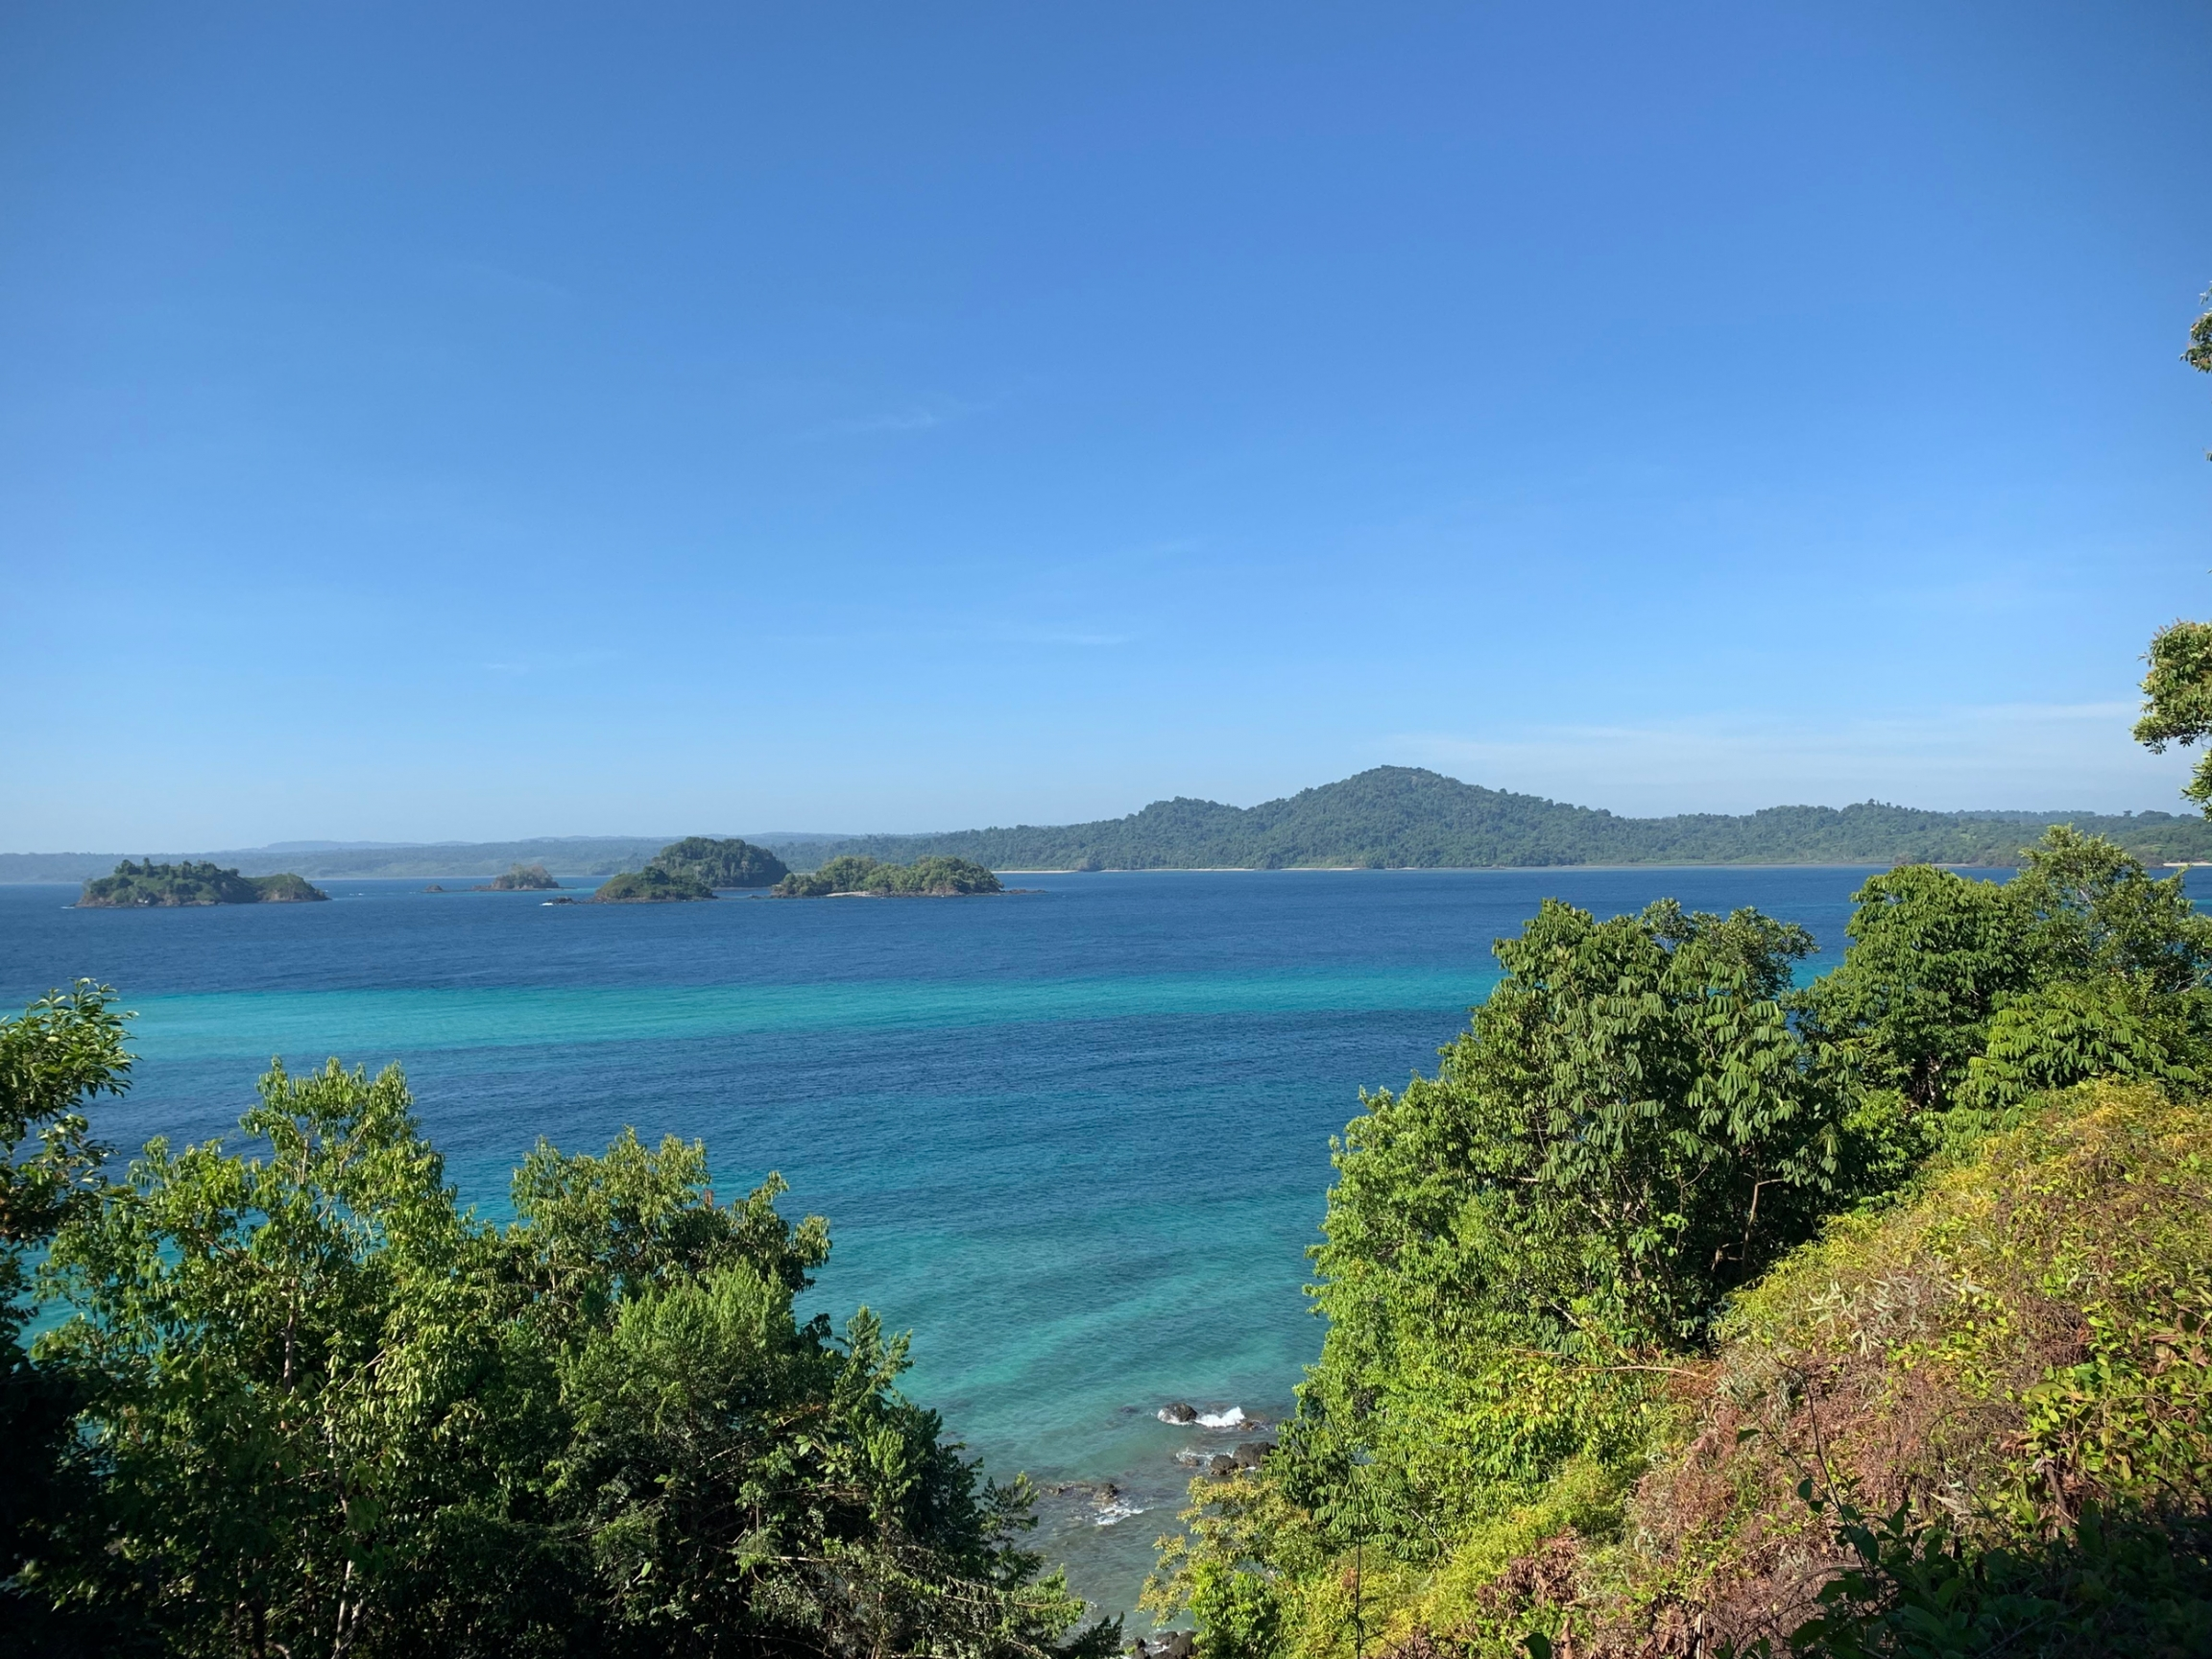 A view of the blue ocean from framed with the lush green forests of Coiba National Park.